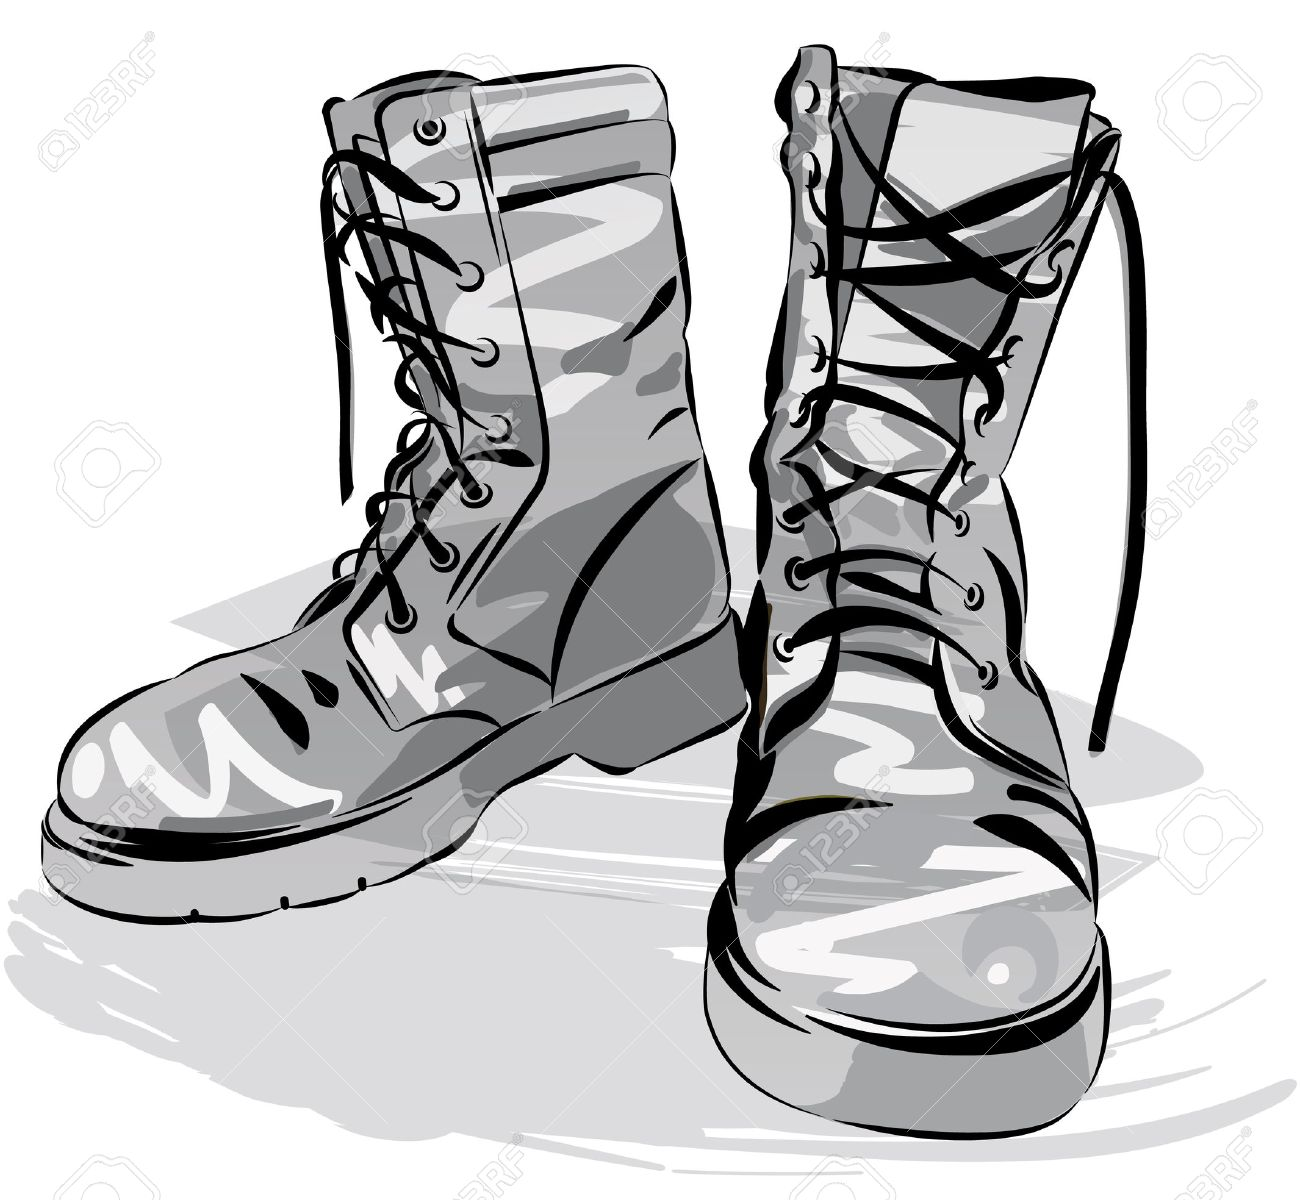 Old army boots. Military leather worn boots. Vector graphic illustration - 59837222